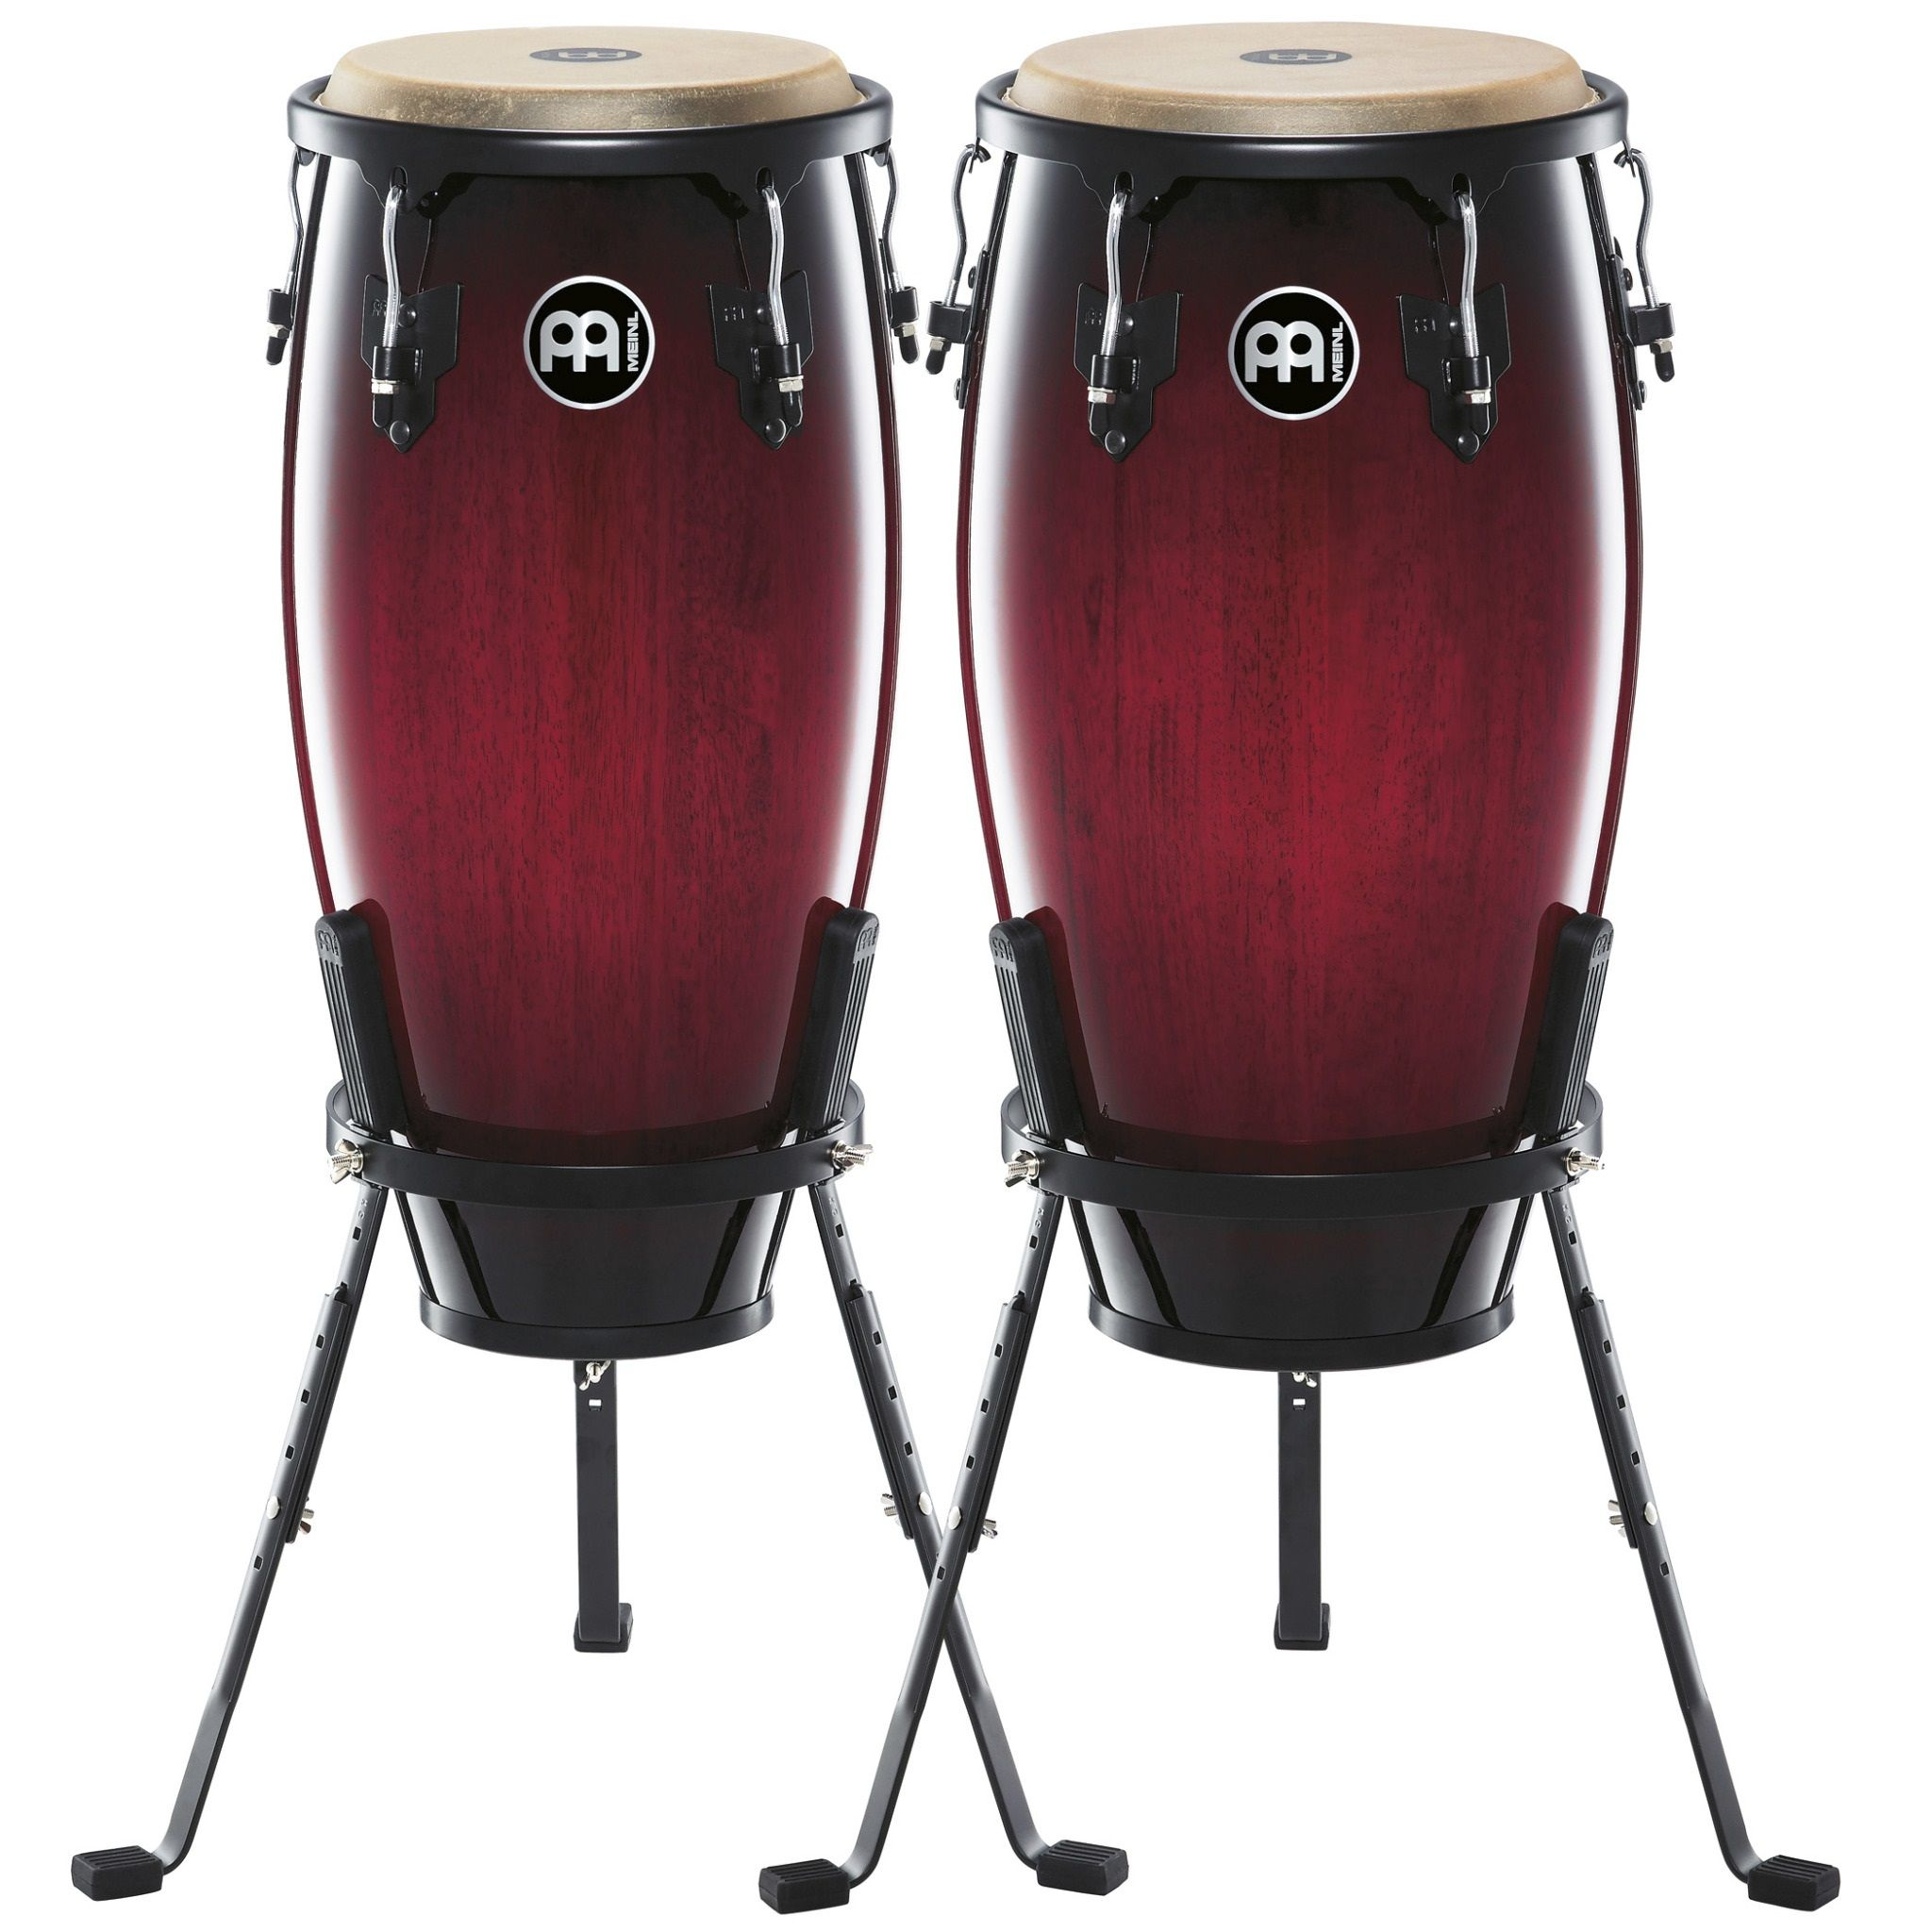 Meinl 11 And 12 Headliner Congas In Wine Red Burst W Stands Congas Percussion Wine Red